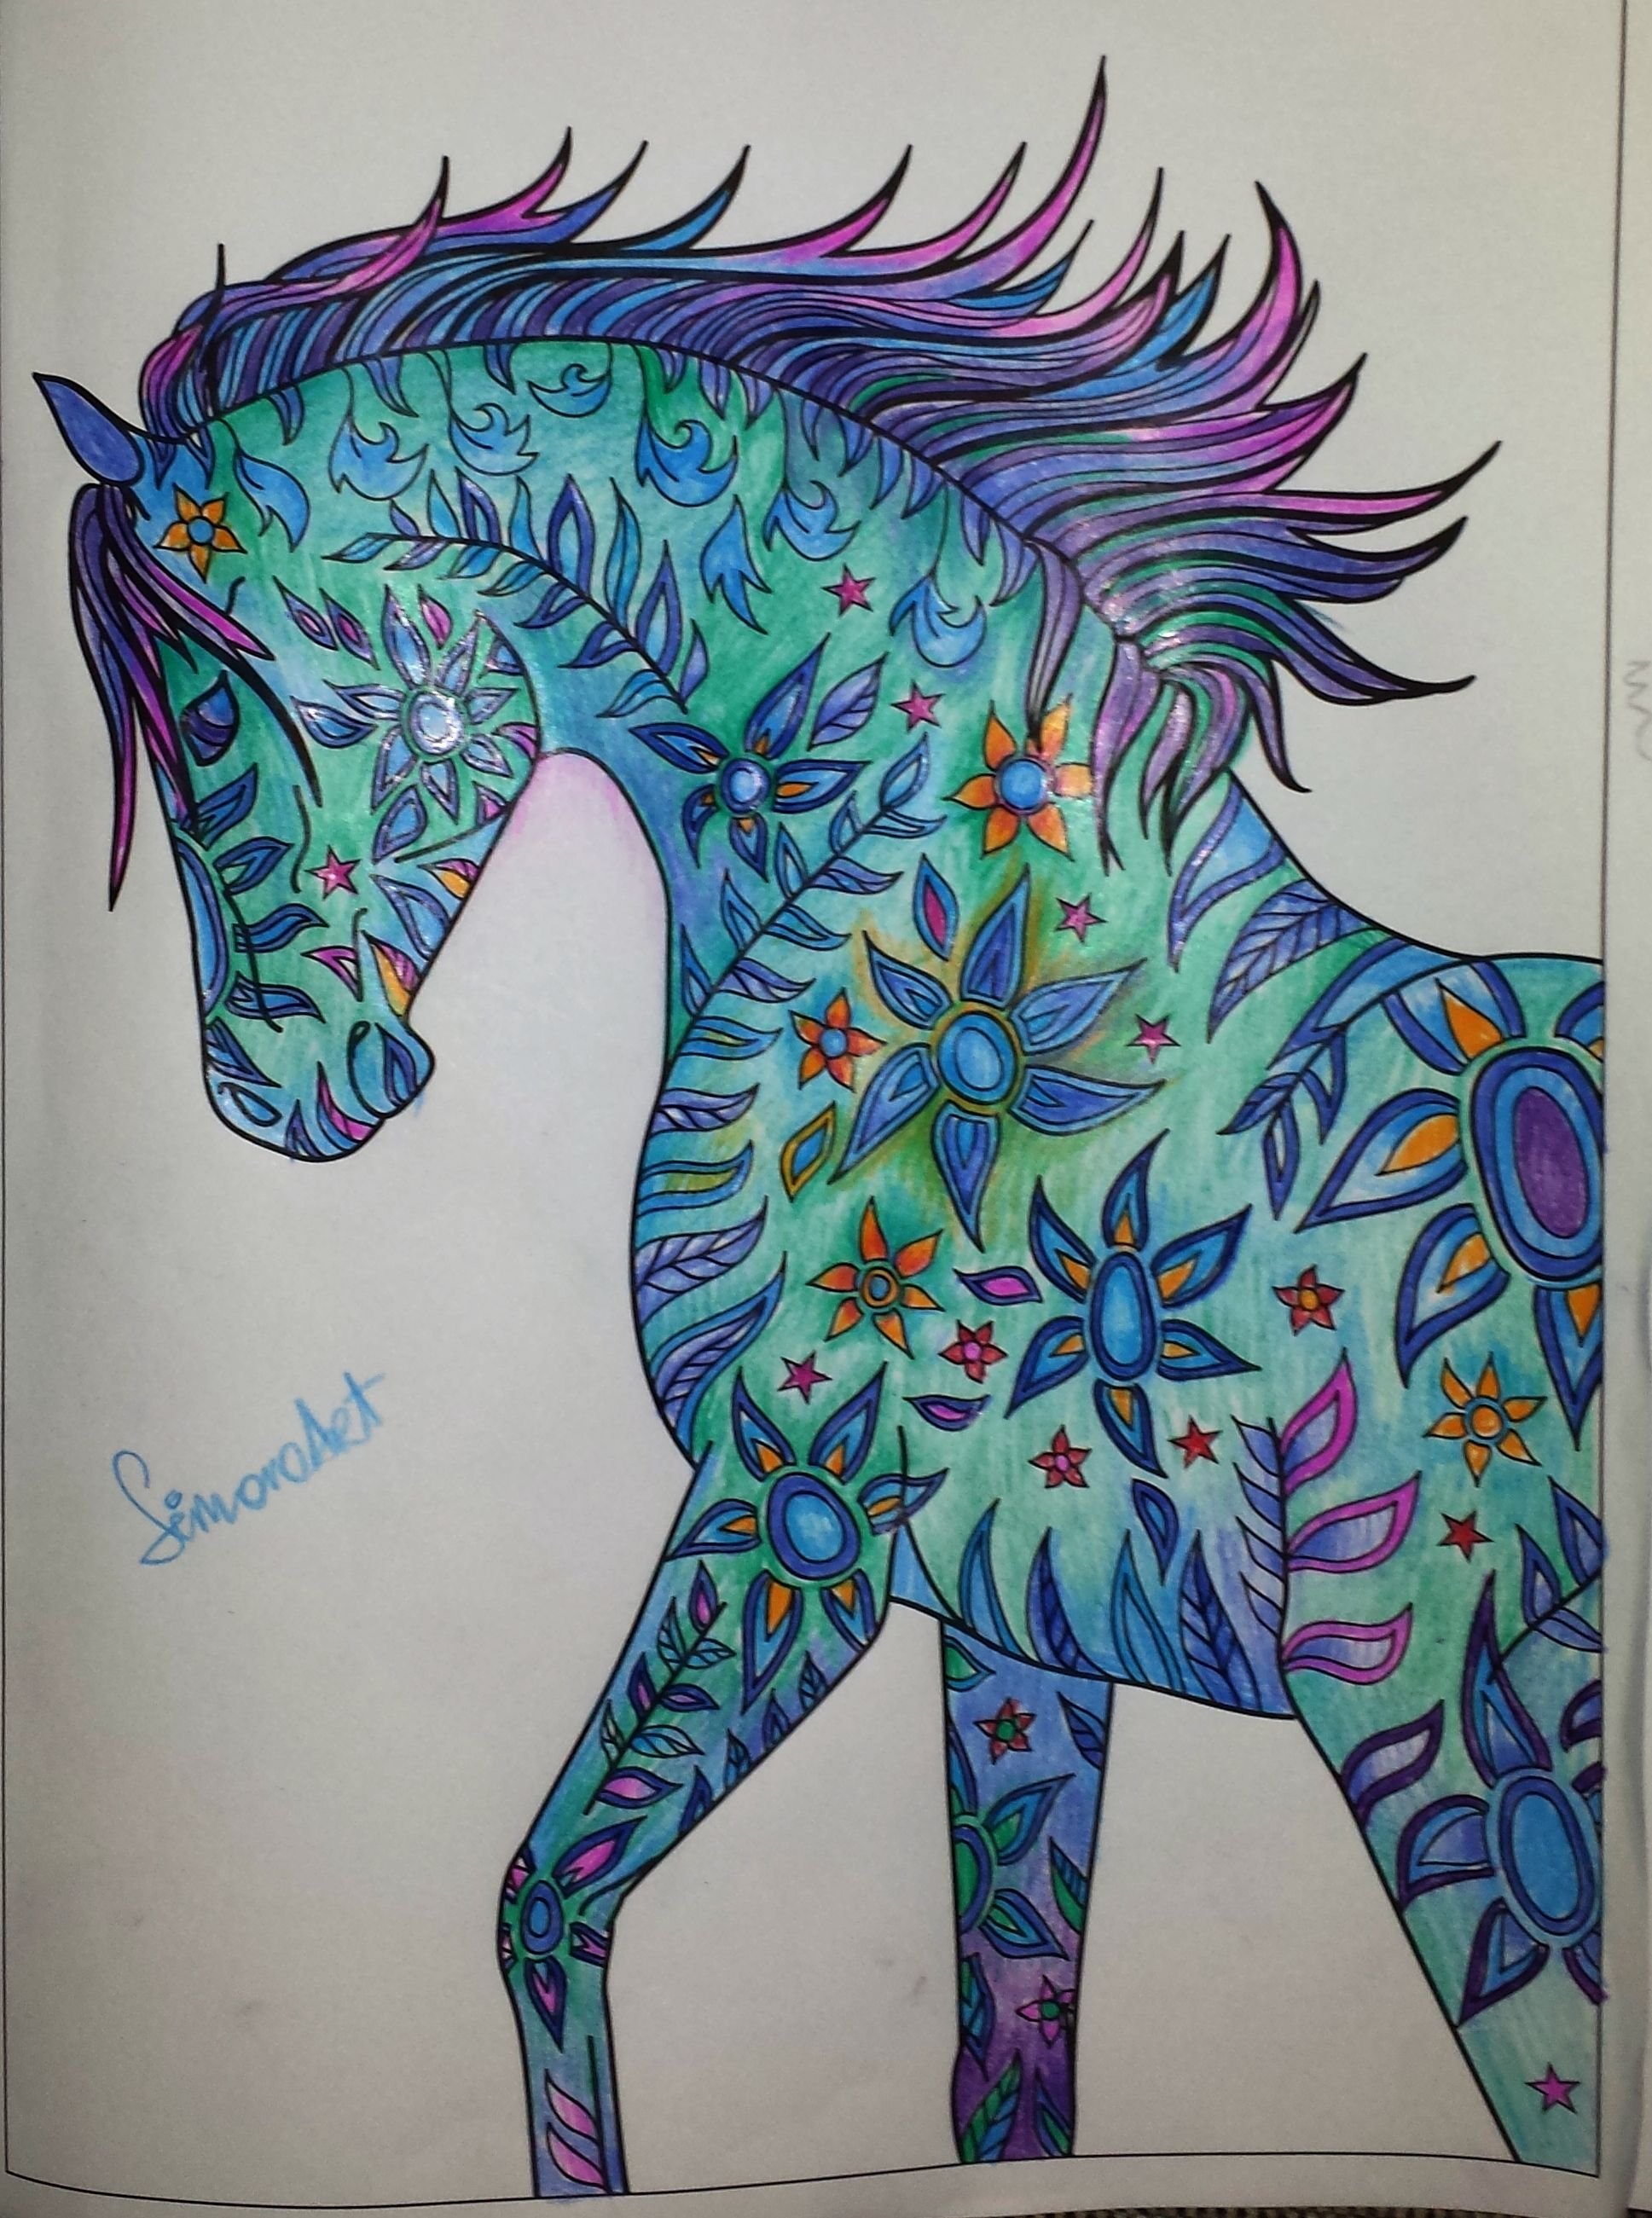 Horse Coloring Pages 3 Free Pages To Download Simonephillipsart Horse Coloring Pages Horse Coloring Anime Puppy